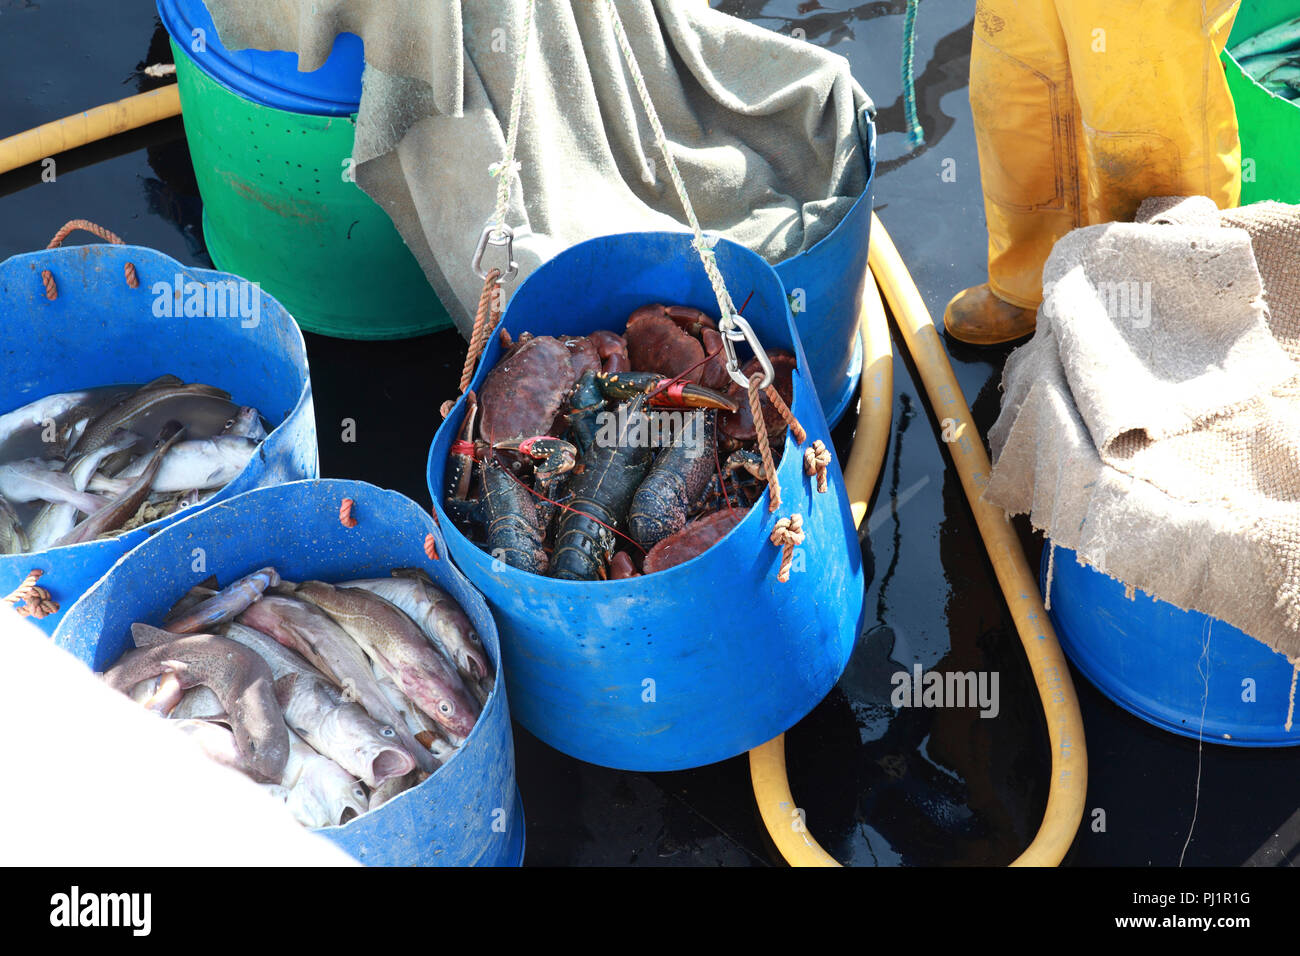 The deck of a small fishing boat with freshly caught fish. A bucket of crabs and lobsters is being lifted off the deck - Stock Image